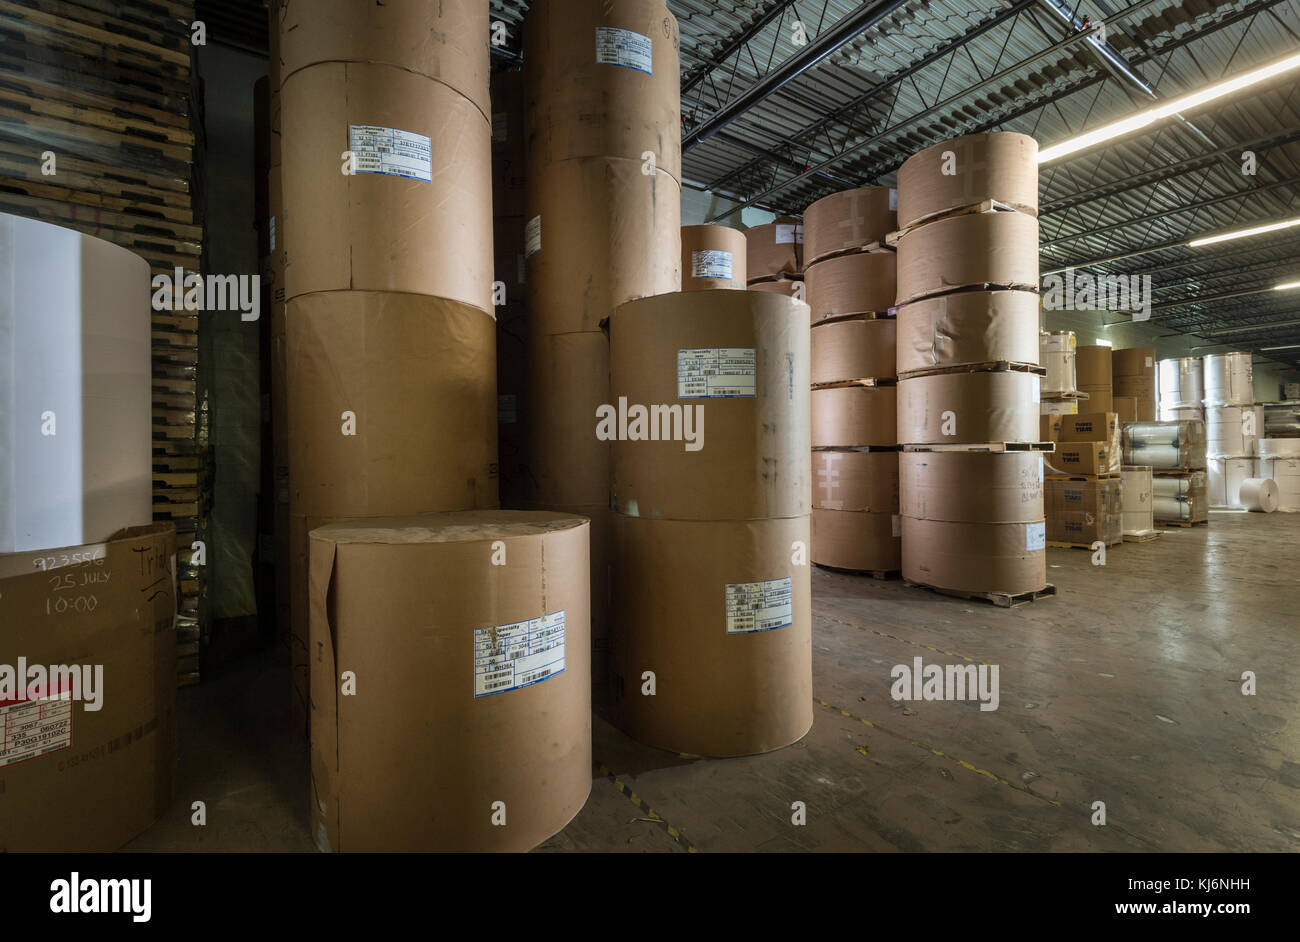 Industrial Paper Rolls In Warehouse - Stock Image